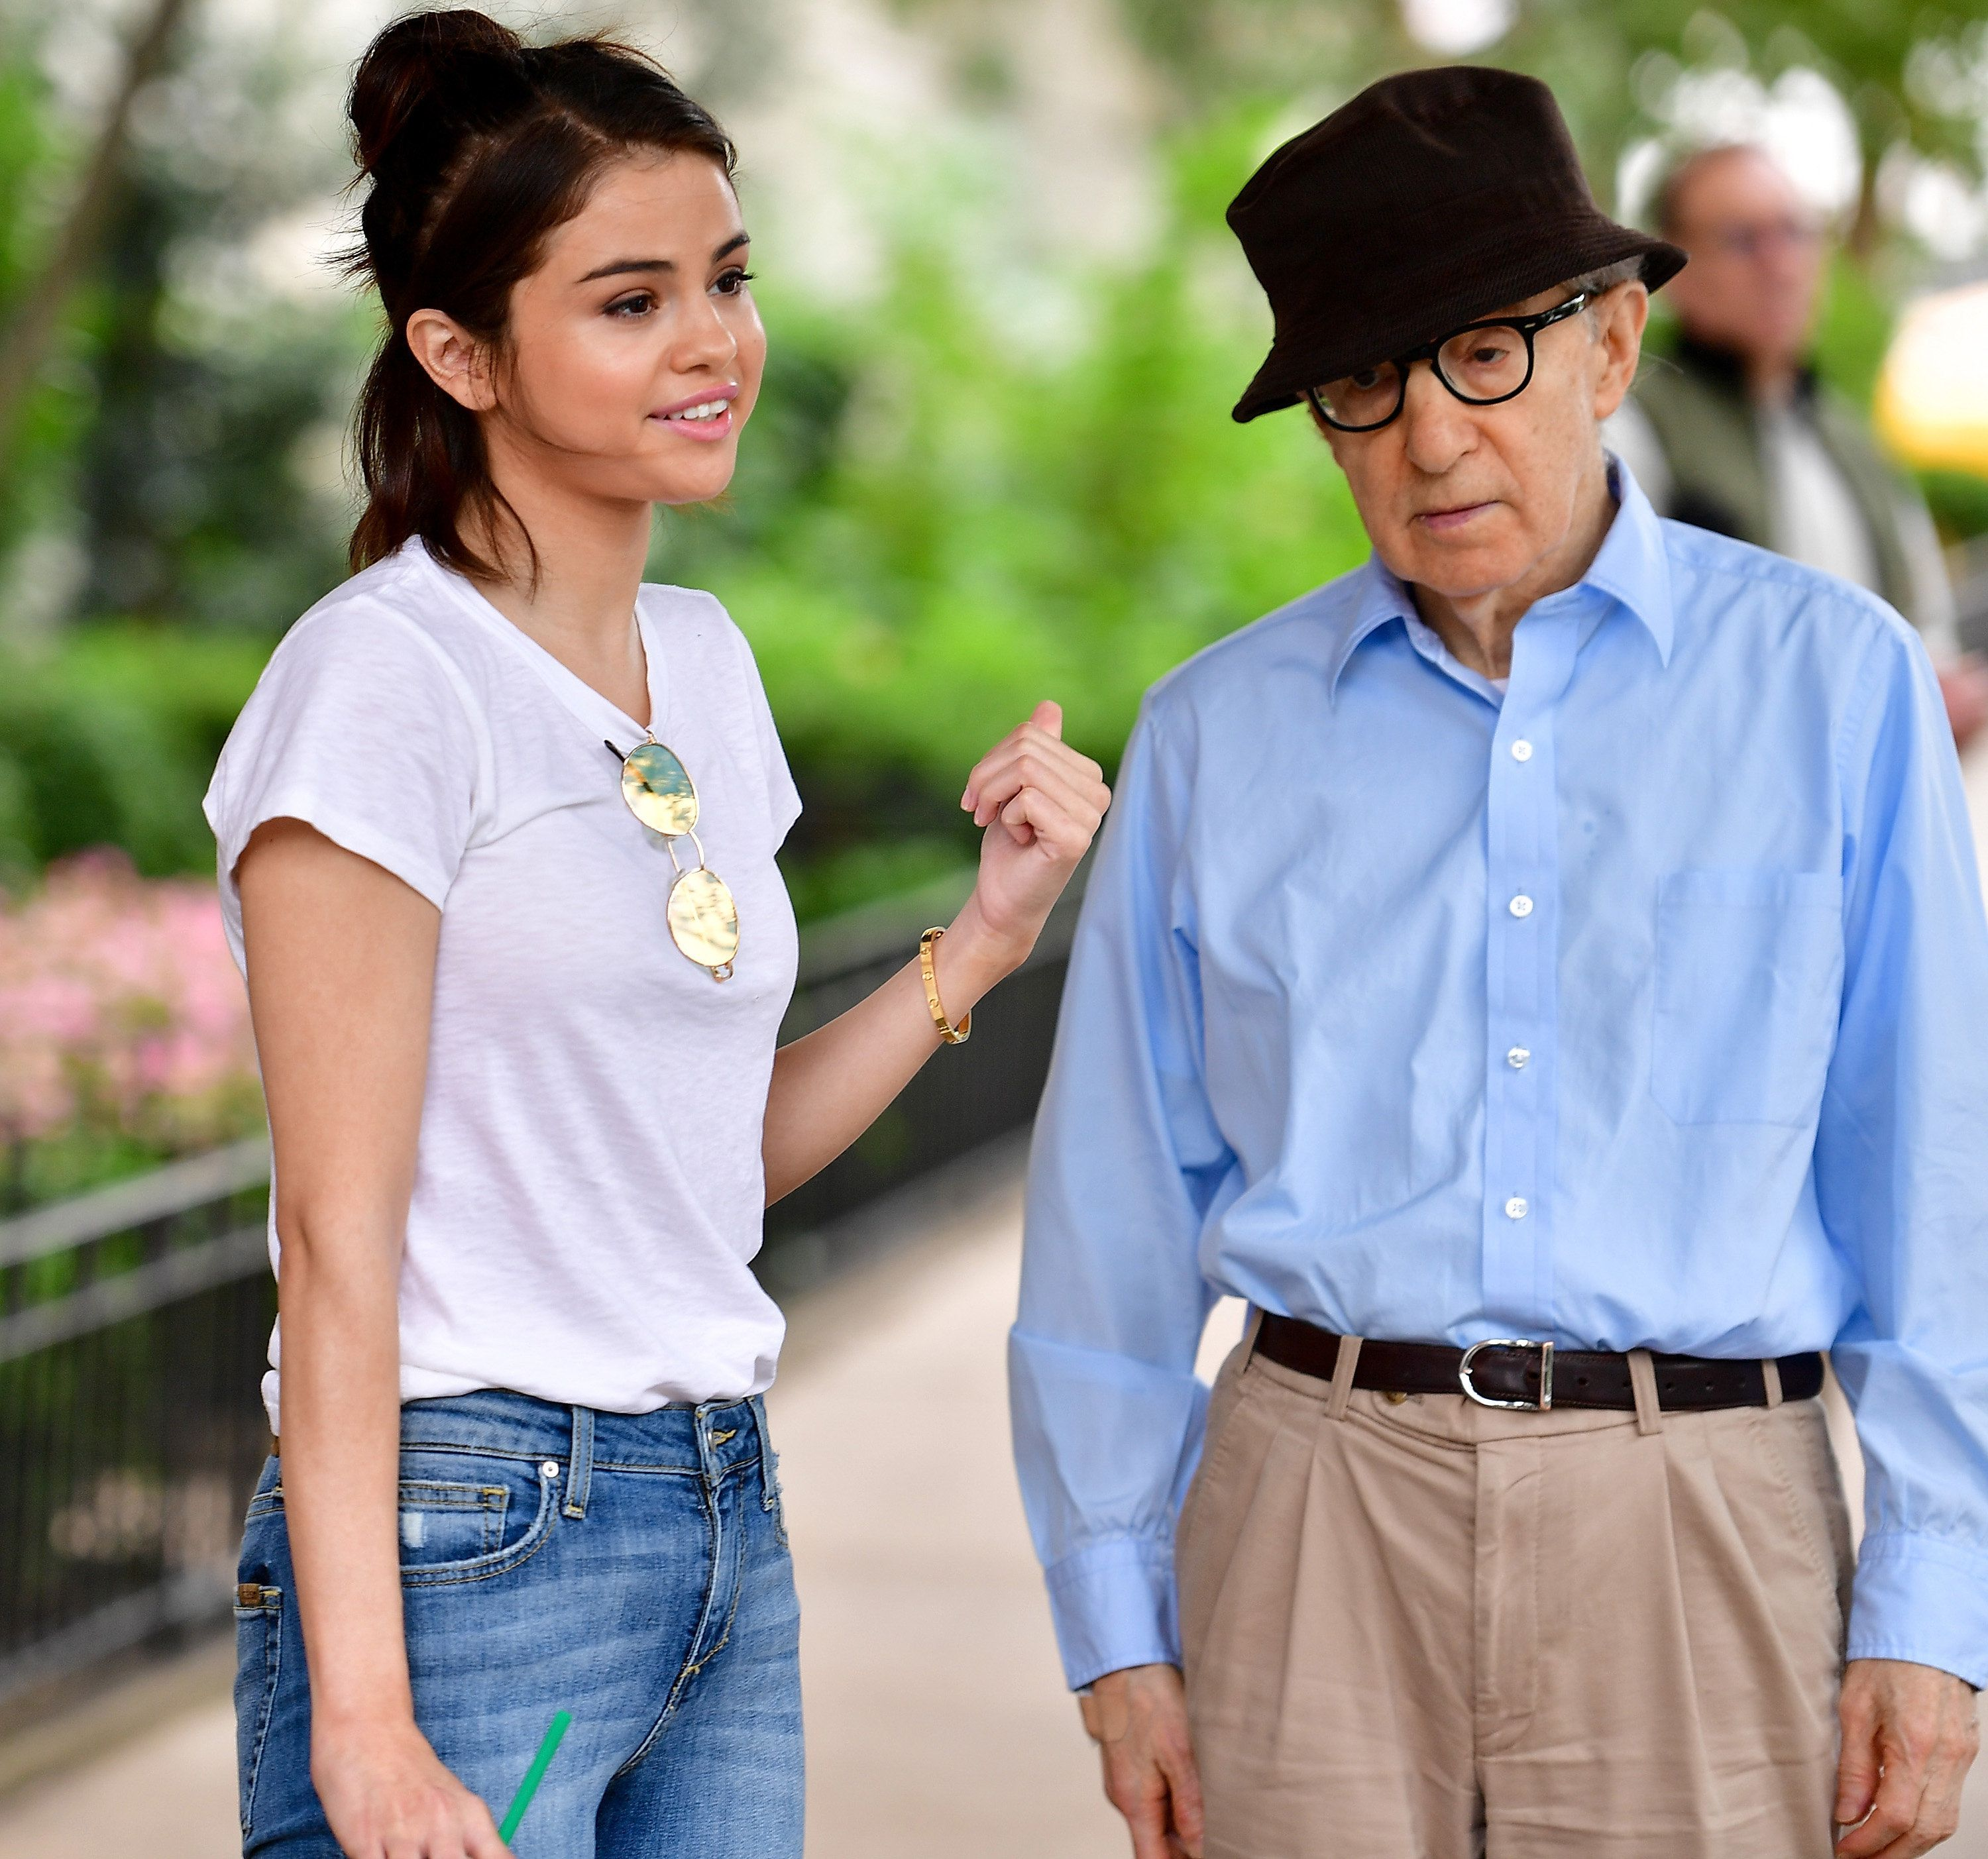 NEW YORK, NY - SEPTEMBER 20:  Selena Gomez and Woody Allen seen on location for Woody Allen's untitled movie on September 20, 2017 in New York City.  (Photo by James Devaney/GC Images)